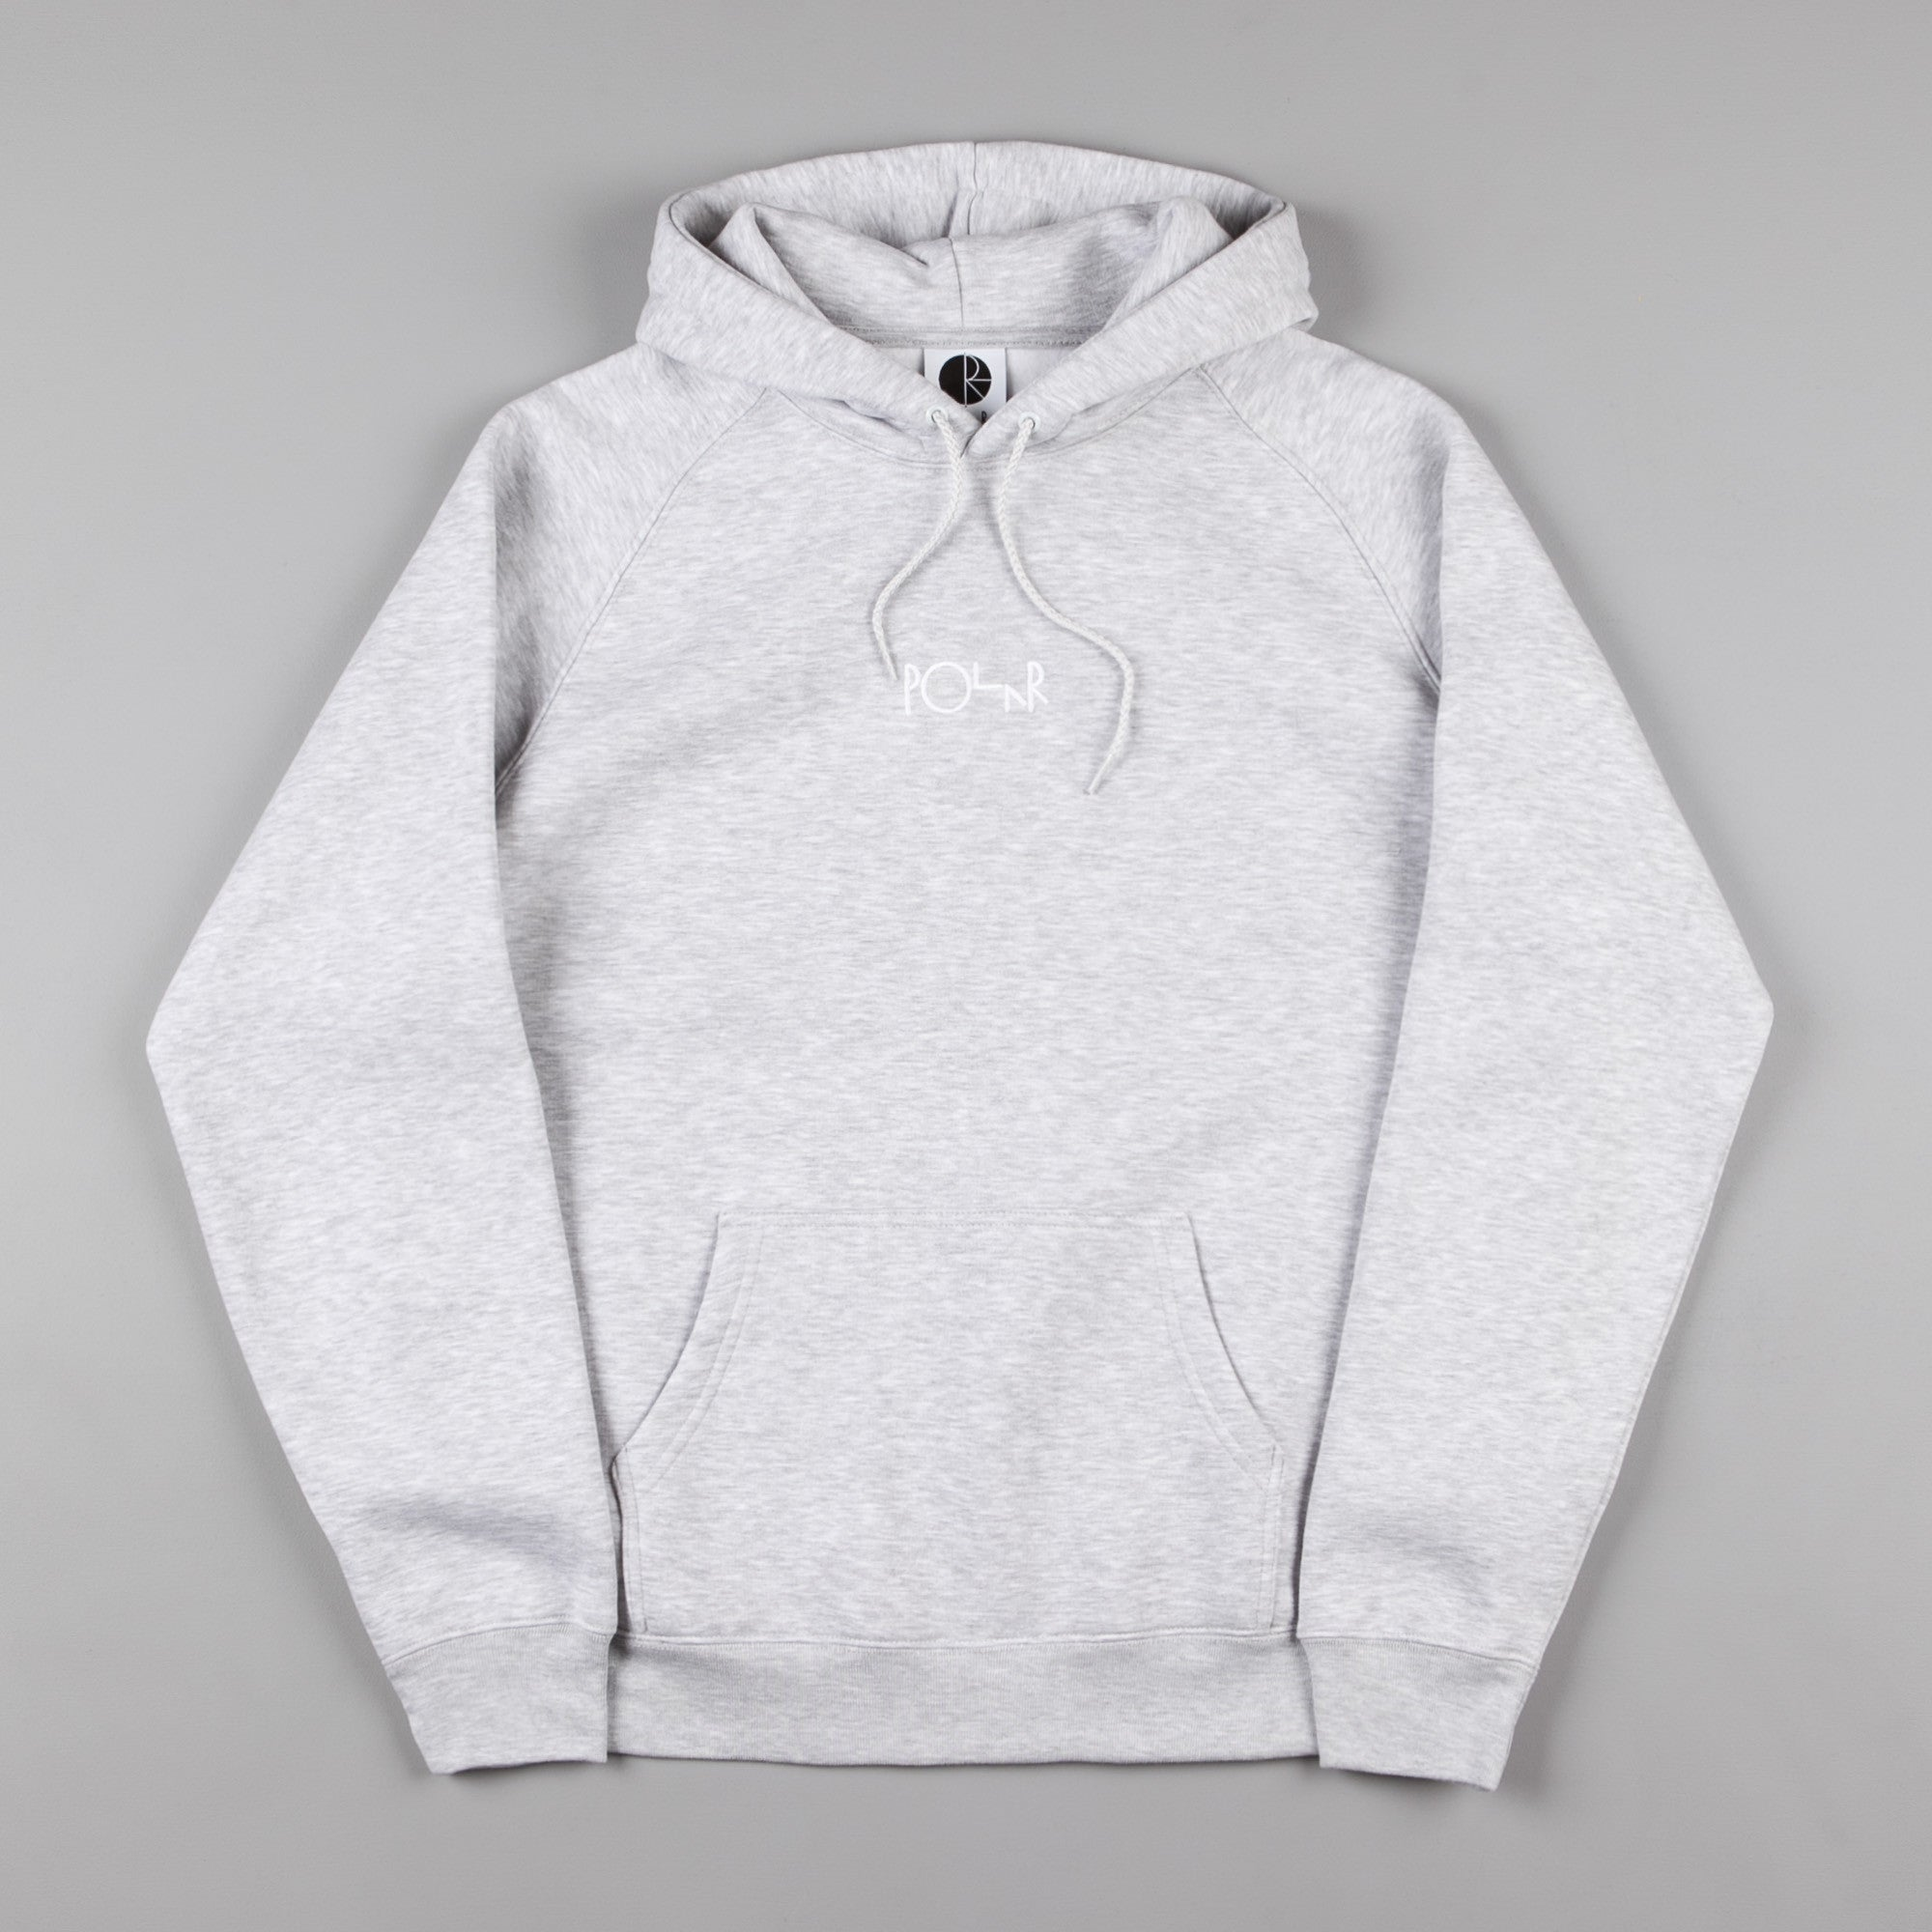 Polar Default Hooded Sweatshirt - Sports Grey